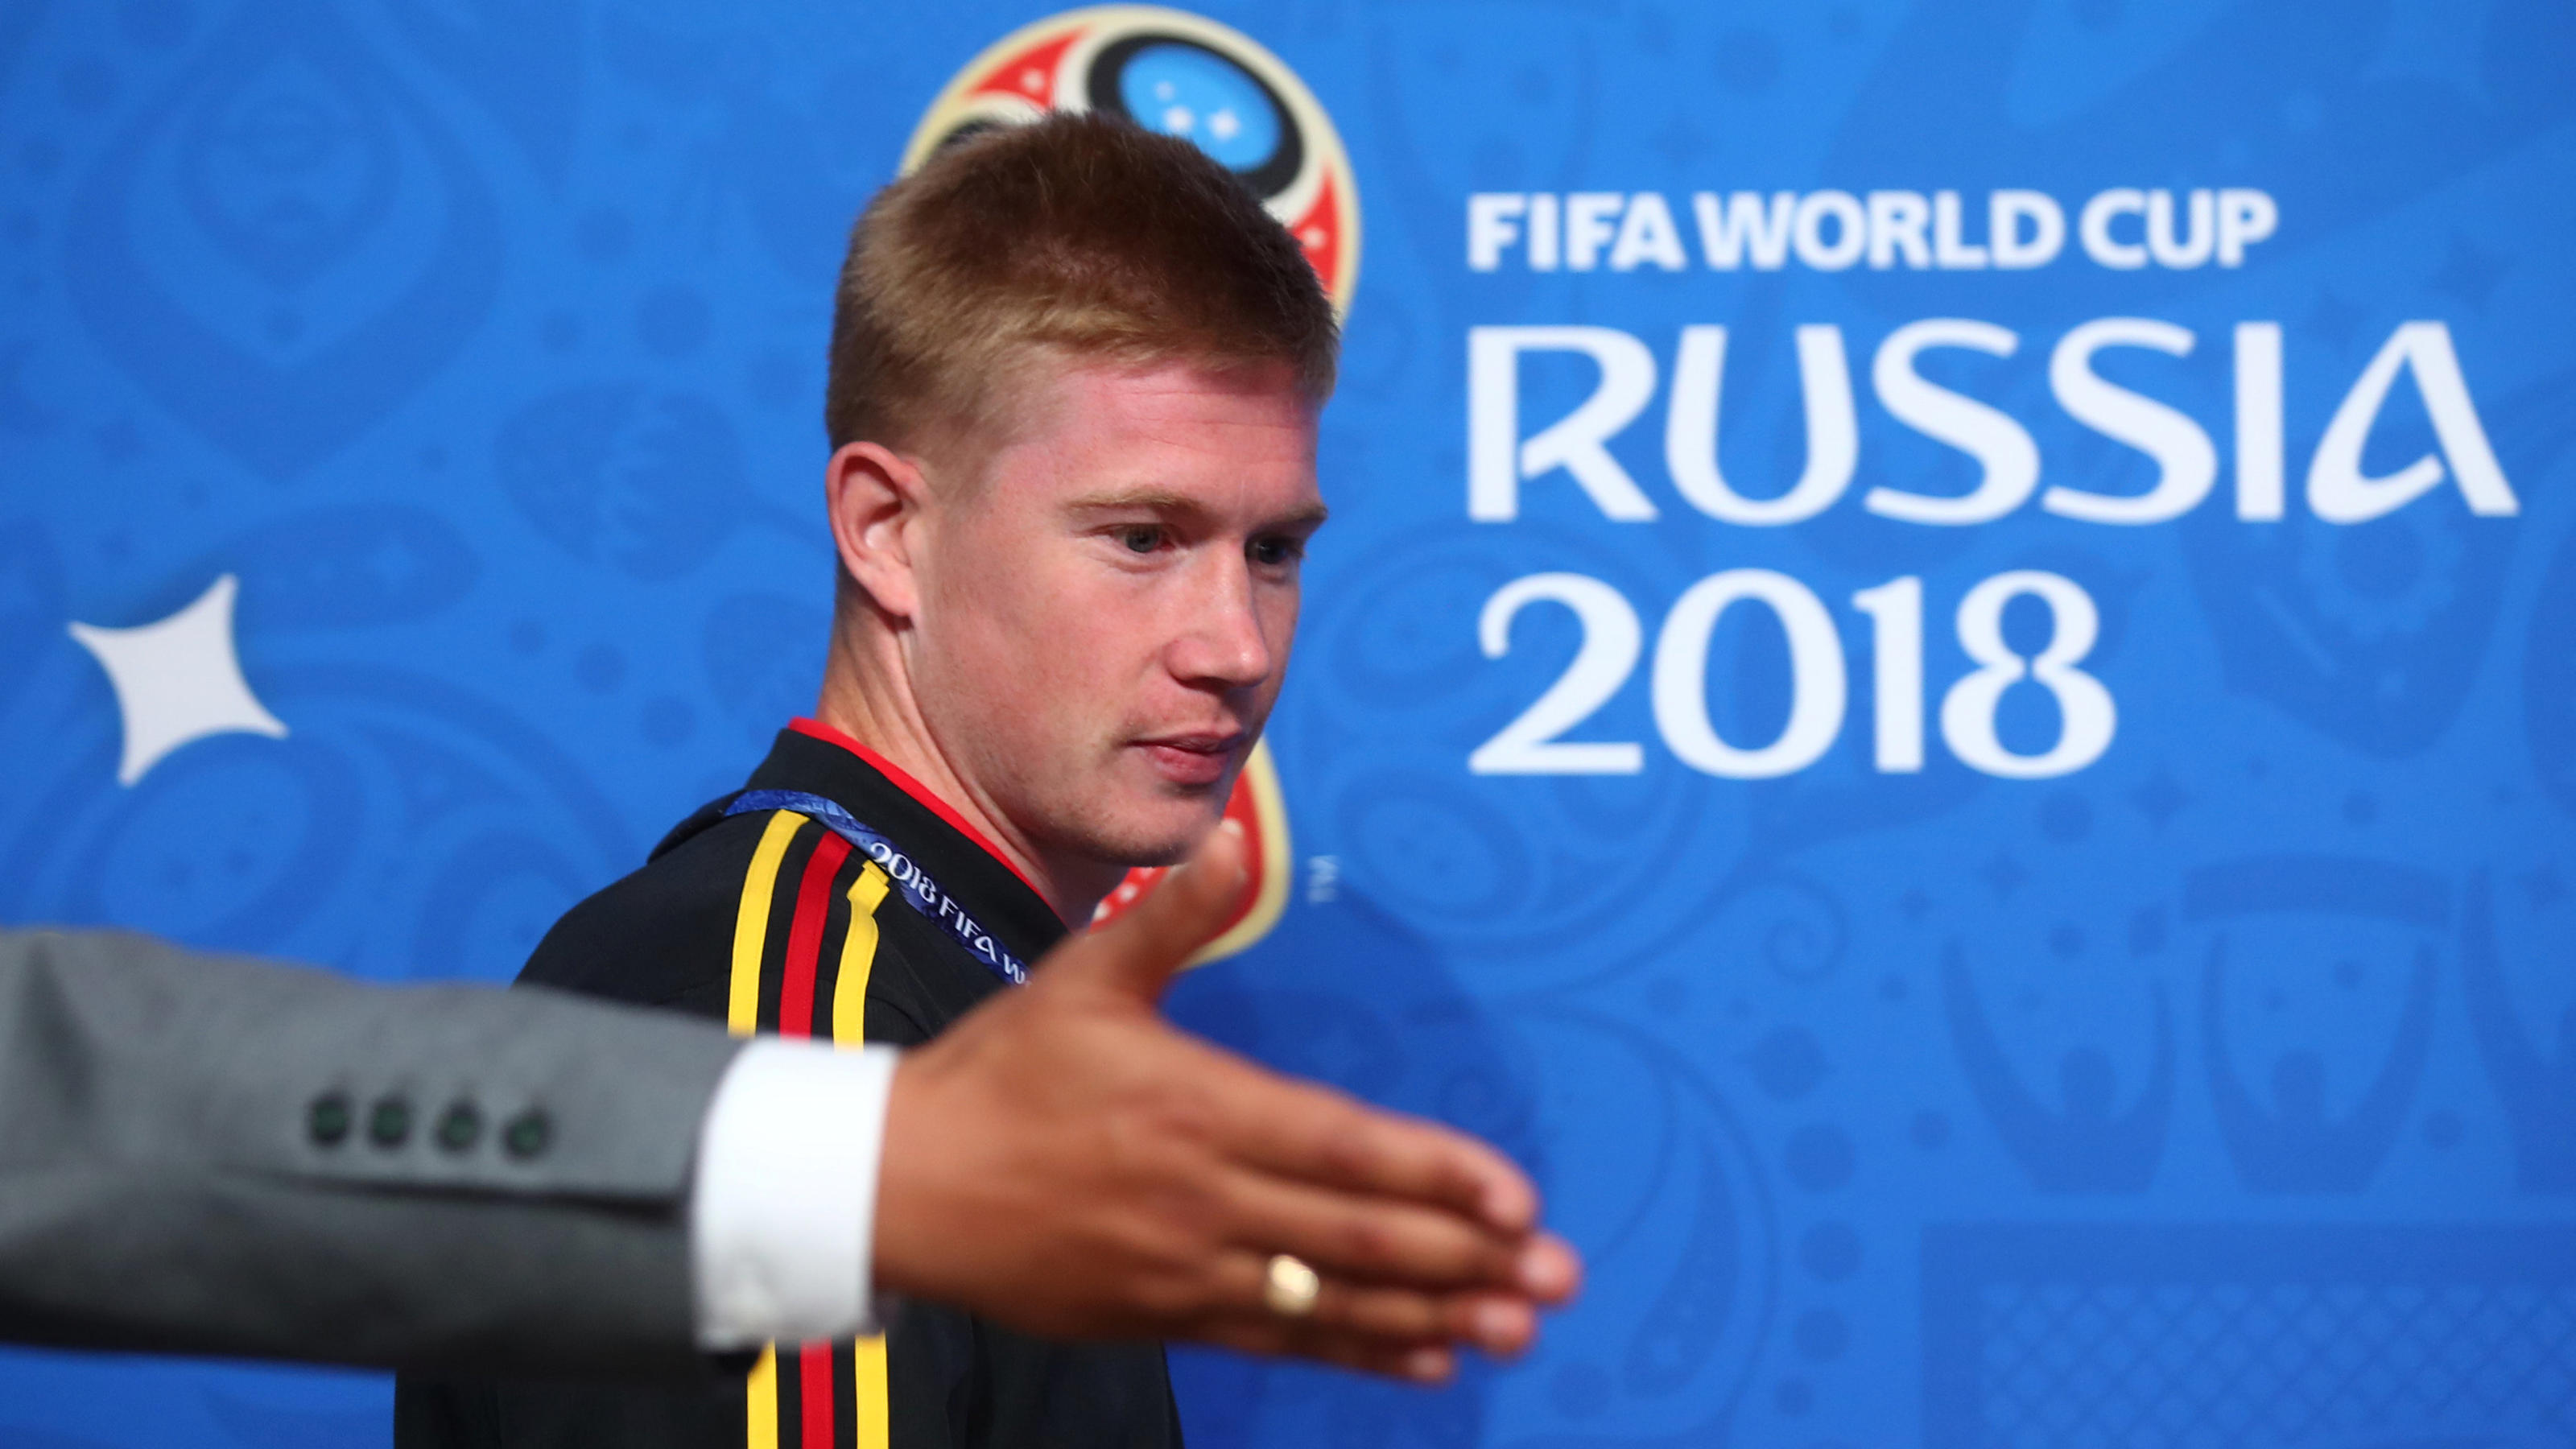 Soccer Football - World Cup - Belgium Press Conference - Saint Petersburg Stadium, Saint Petersburg Russia - July 9, 2018   Belgium's Kevin De Bruyne during the press conference   REUTERS/Michael Dalder